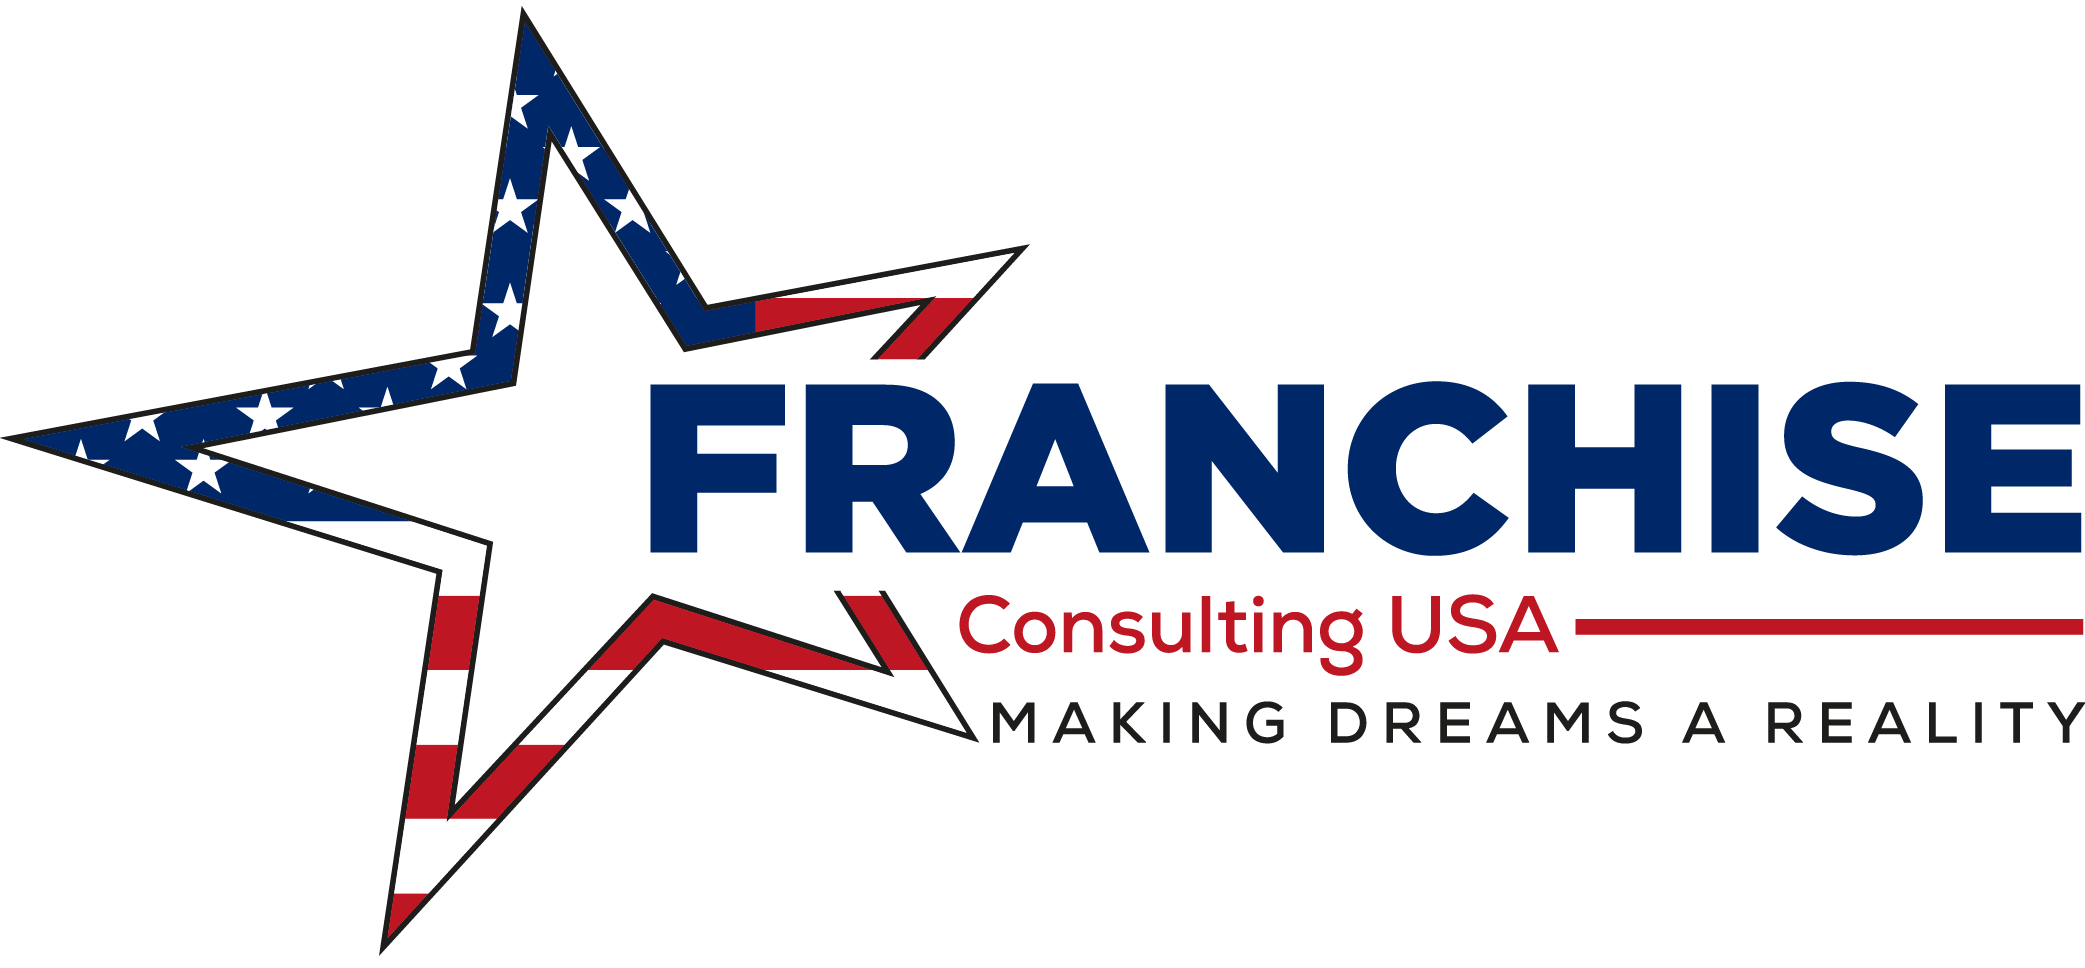 Franchise Consulting USA